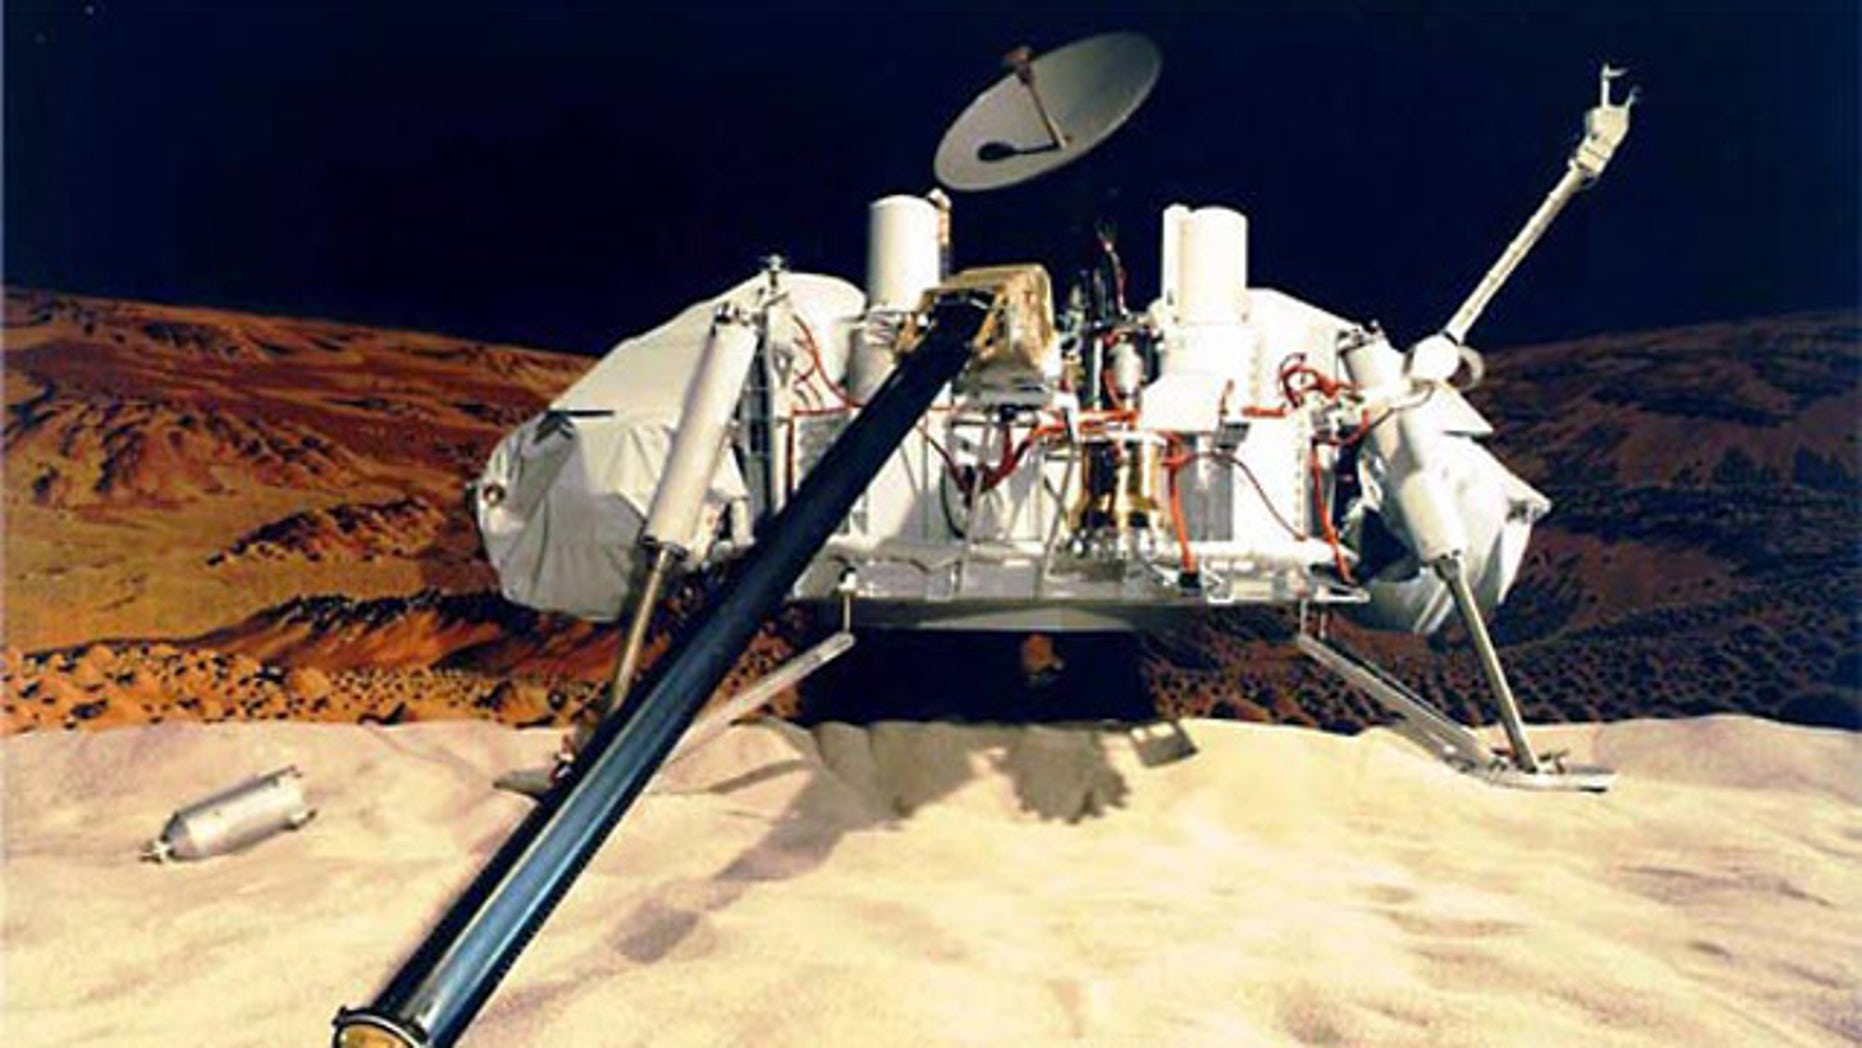 NASA's Viking landers carried four instruments designed to search for signs of Martian life: a gas chromatograph/mass spectrometer, as well as experiments for gas exchange, labeled release and pyrolytic release. It may have been successful.